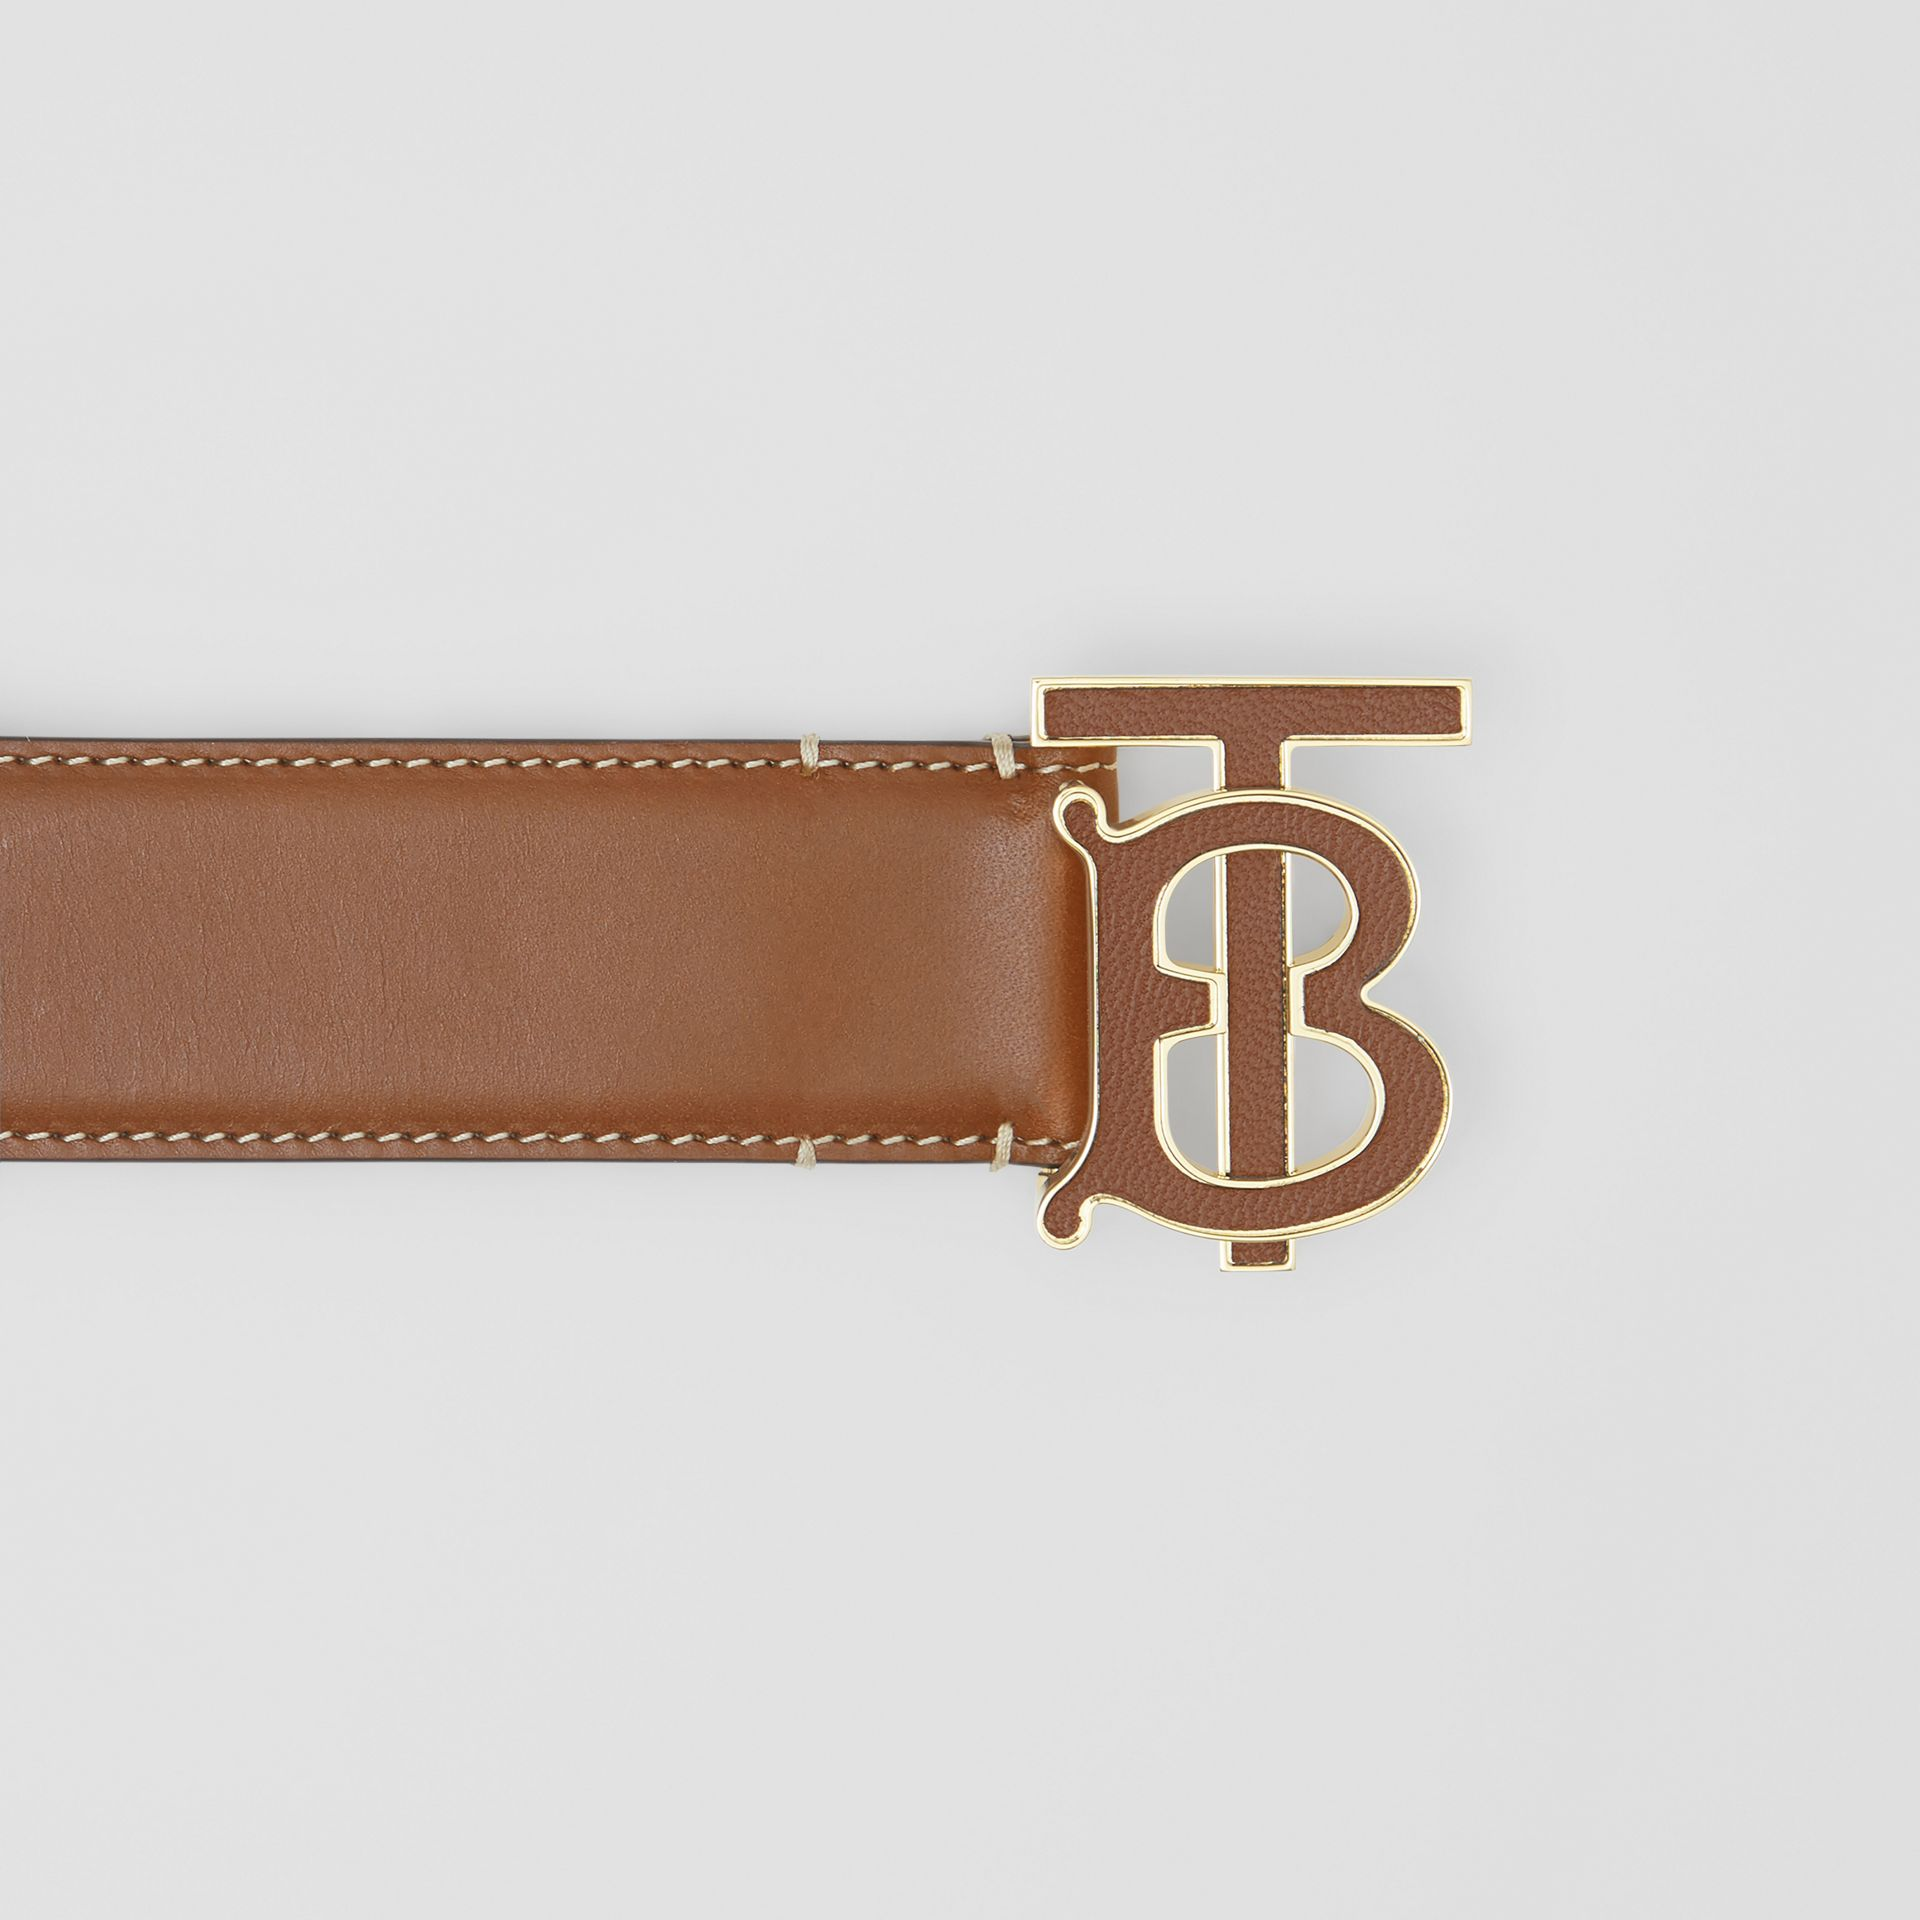 Monogram Motif Leather Belt in Tan - Women | Burberry Canada - gallery image 1